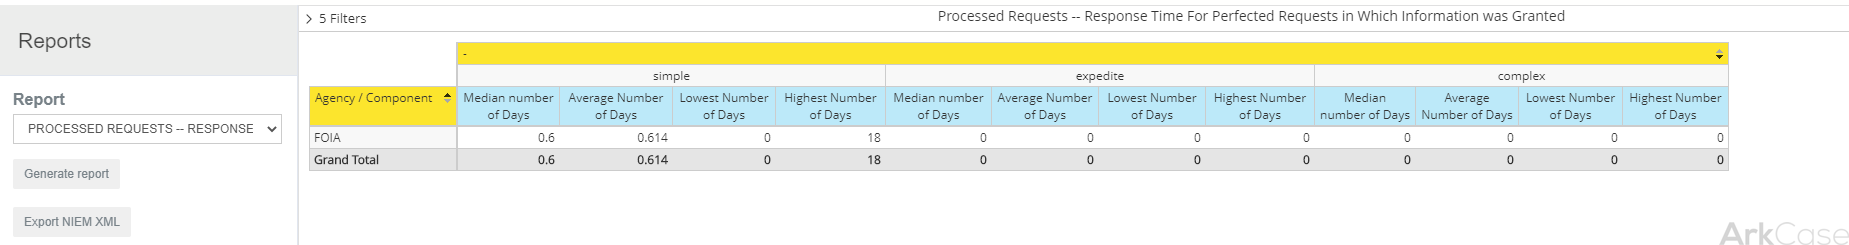 Processed Requests -- Response Time For Perfected Requests in Which Information was Granted